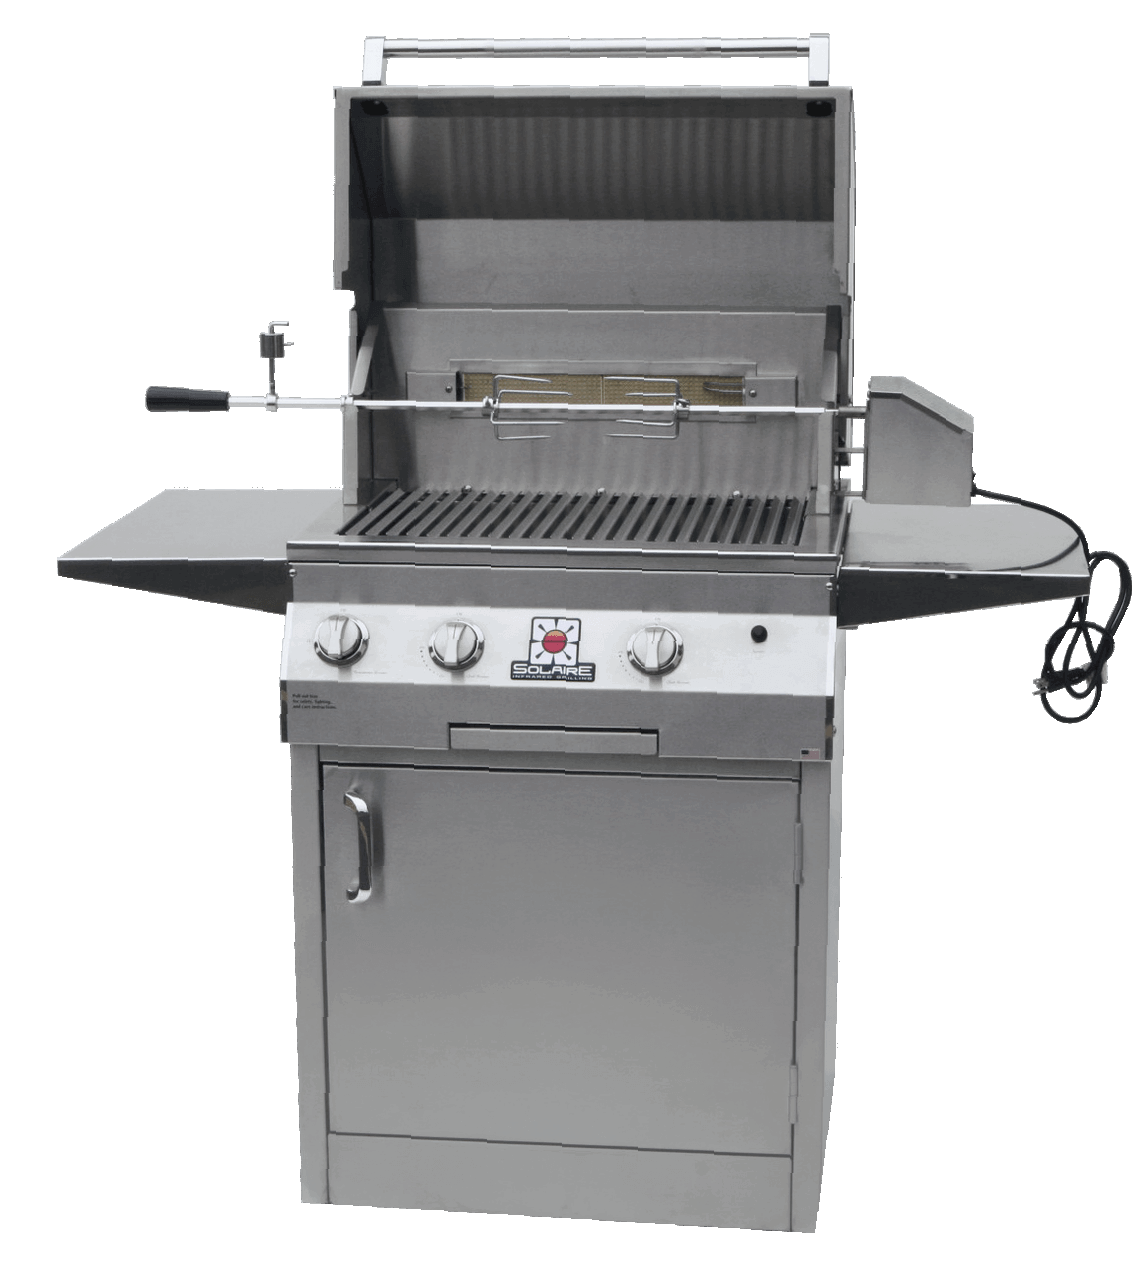 Solaire 27 XL Grill, Square Cart, Front View, Hood Up, Rotisserie, Shelves Up, AGBQ